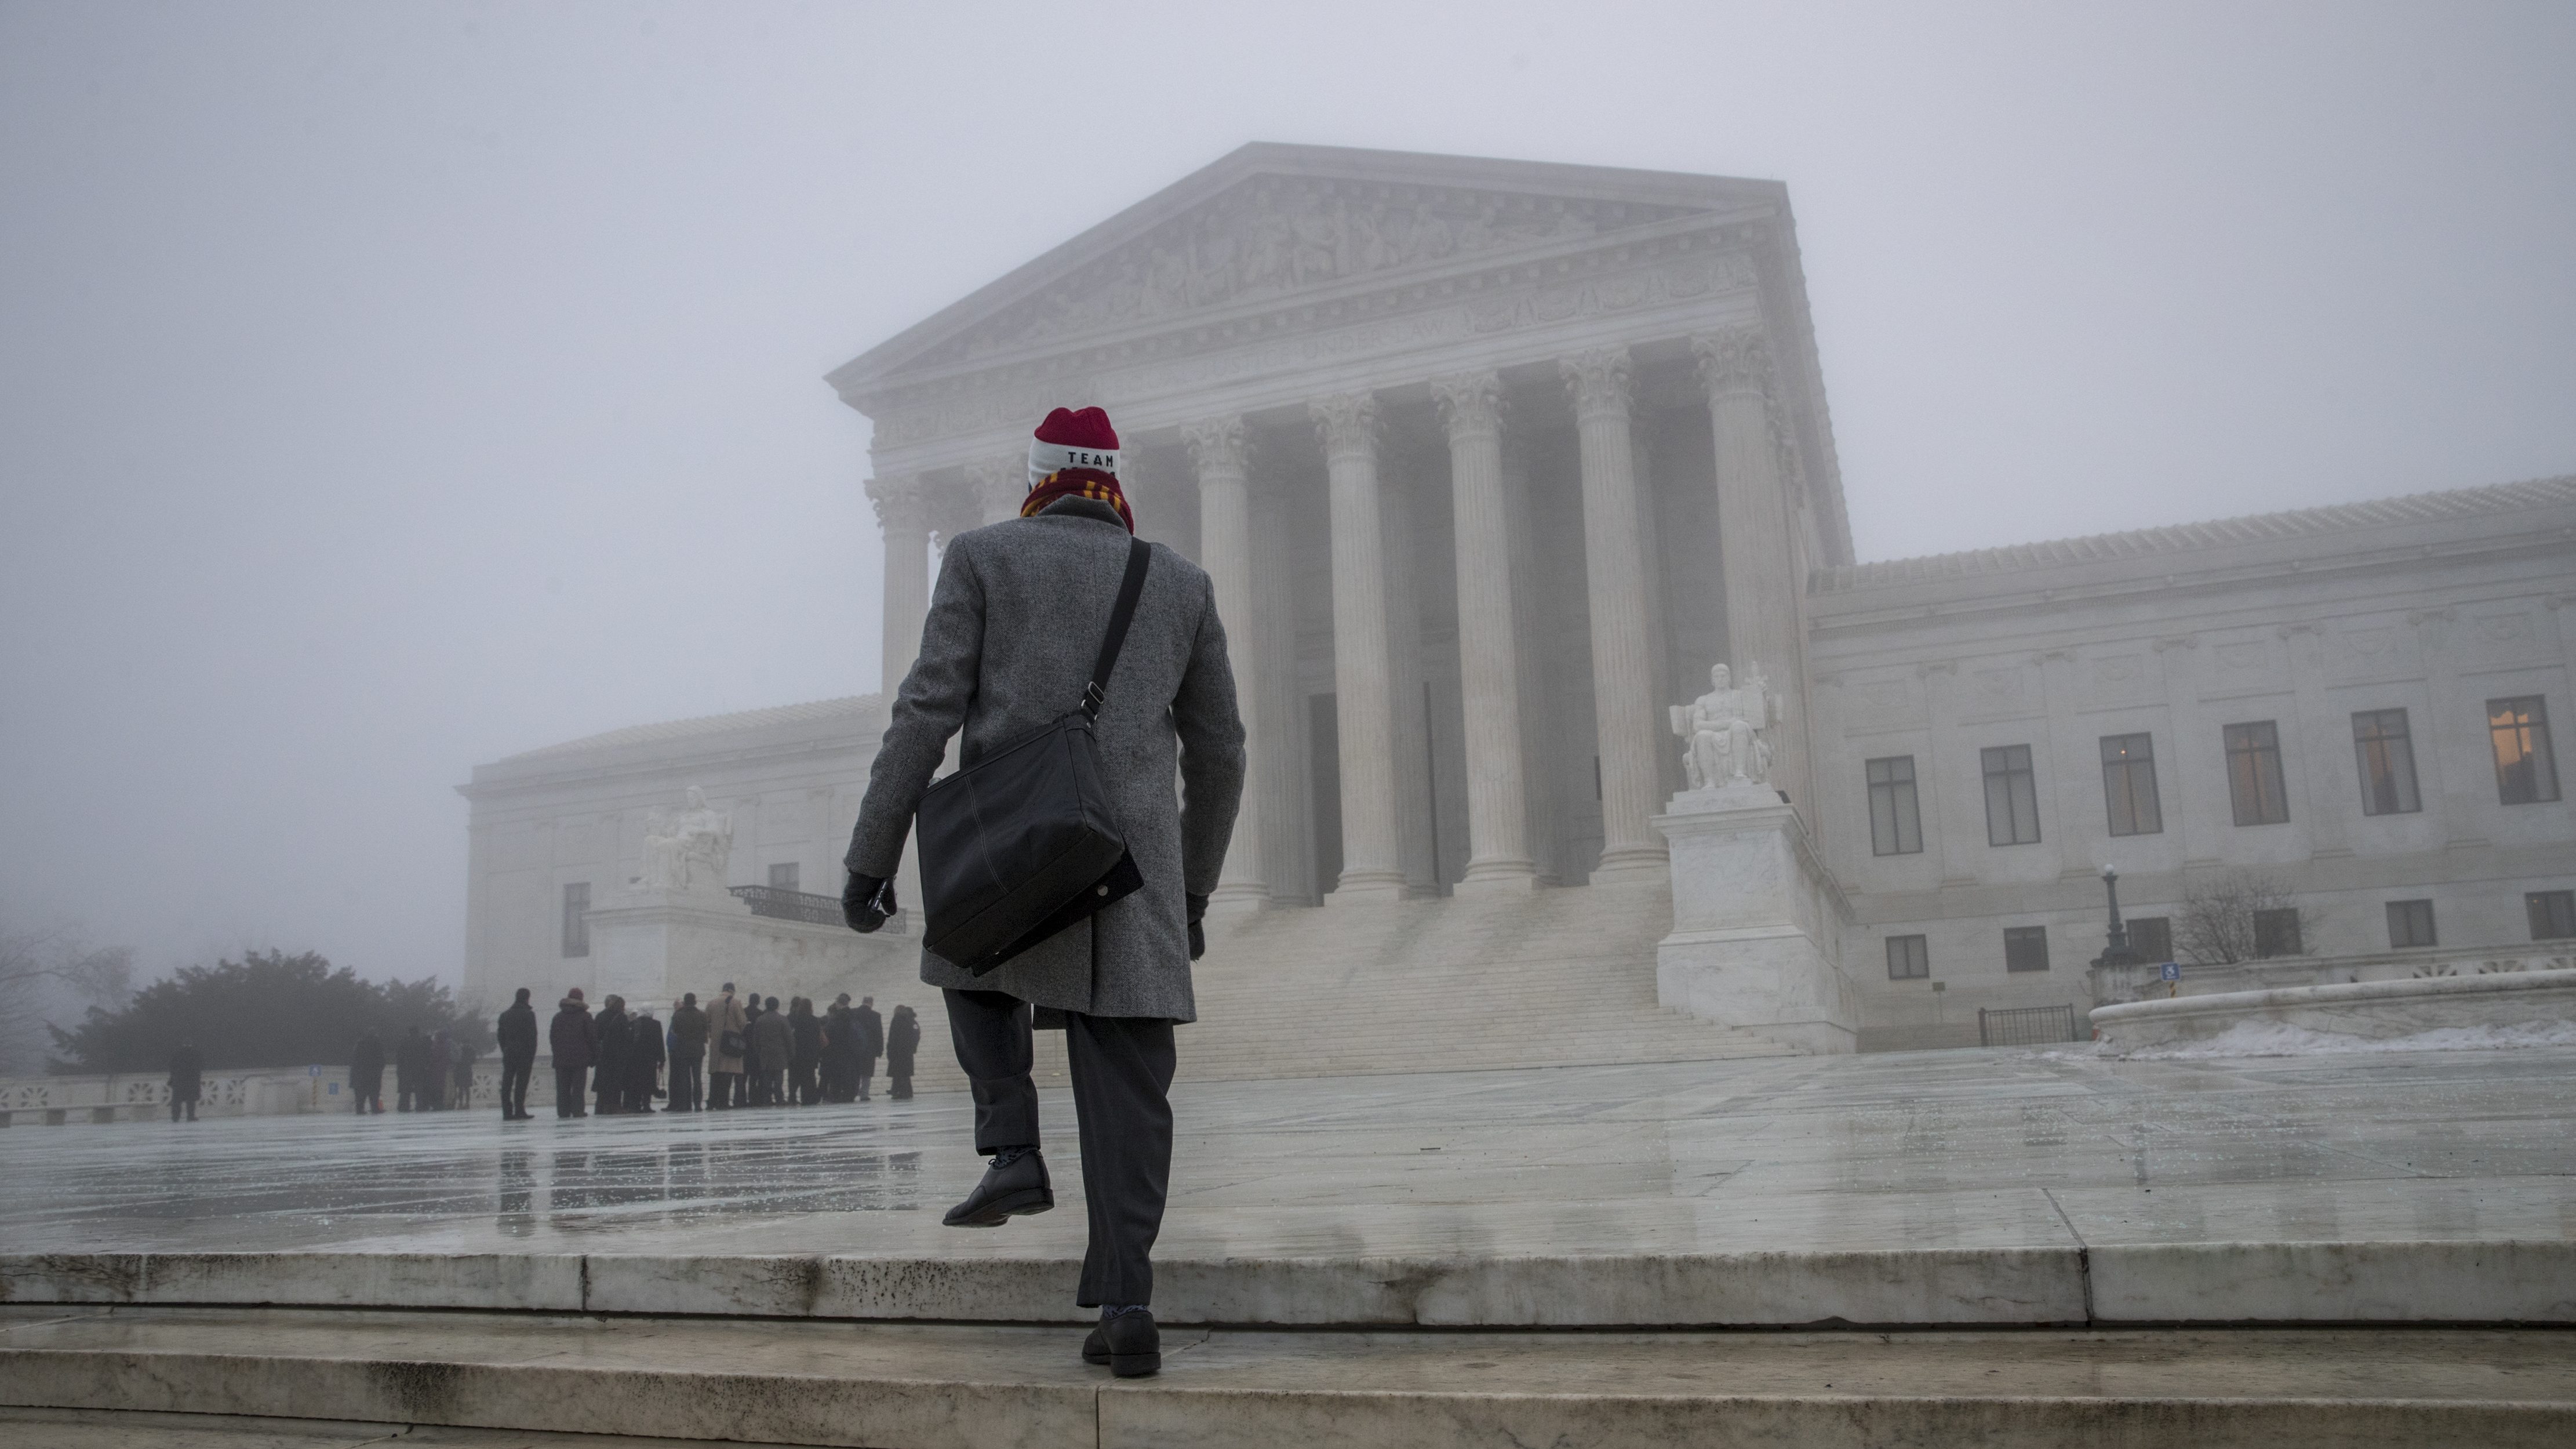 Supreme Court Gets Moving, Issuing As Many Decisions In One Day As It Has In 5 Months